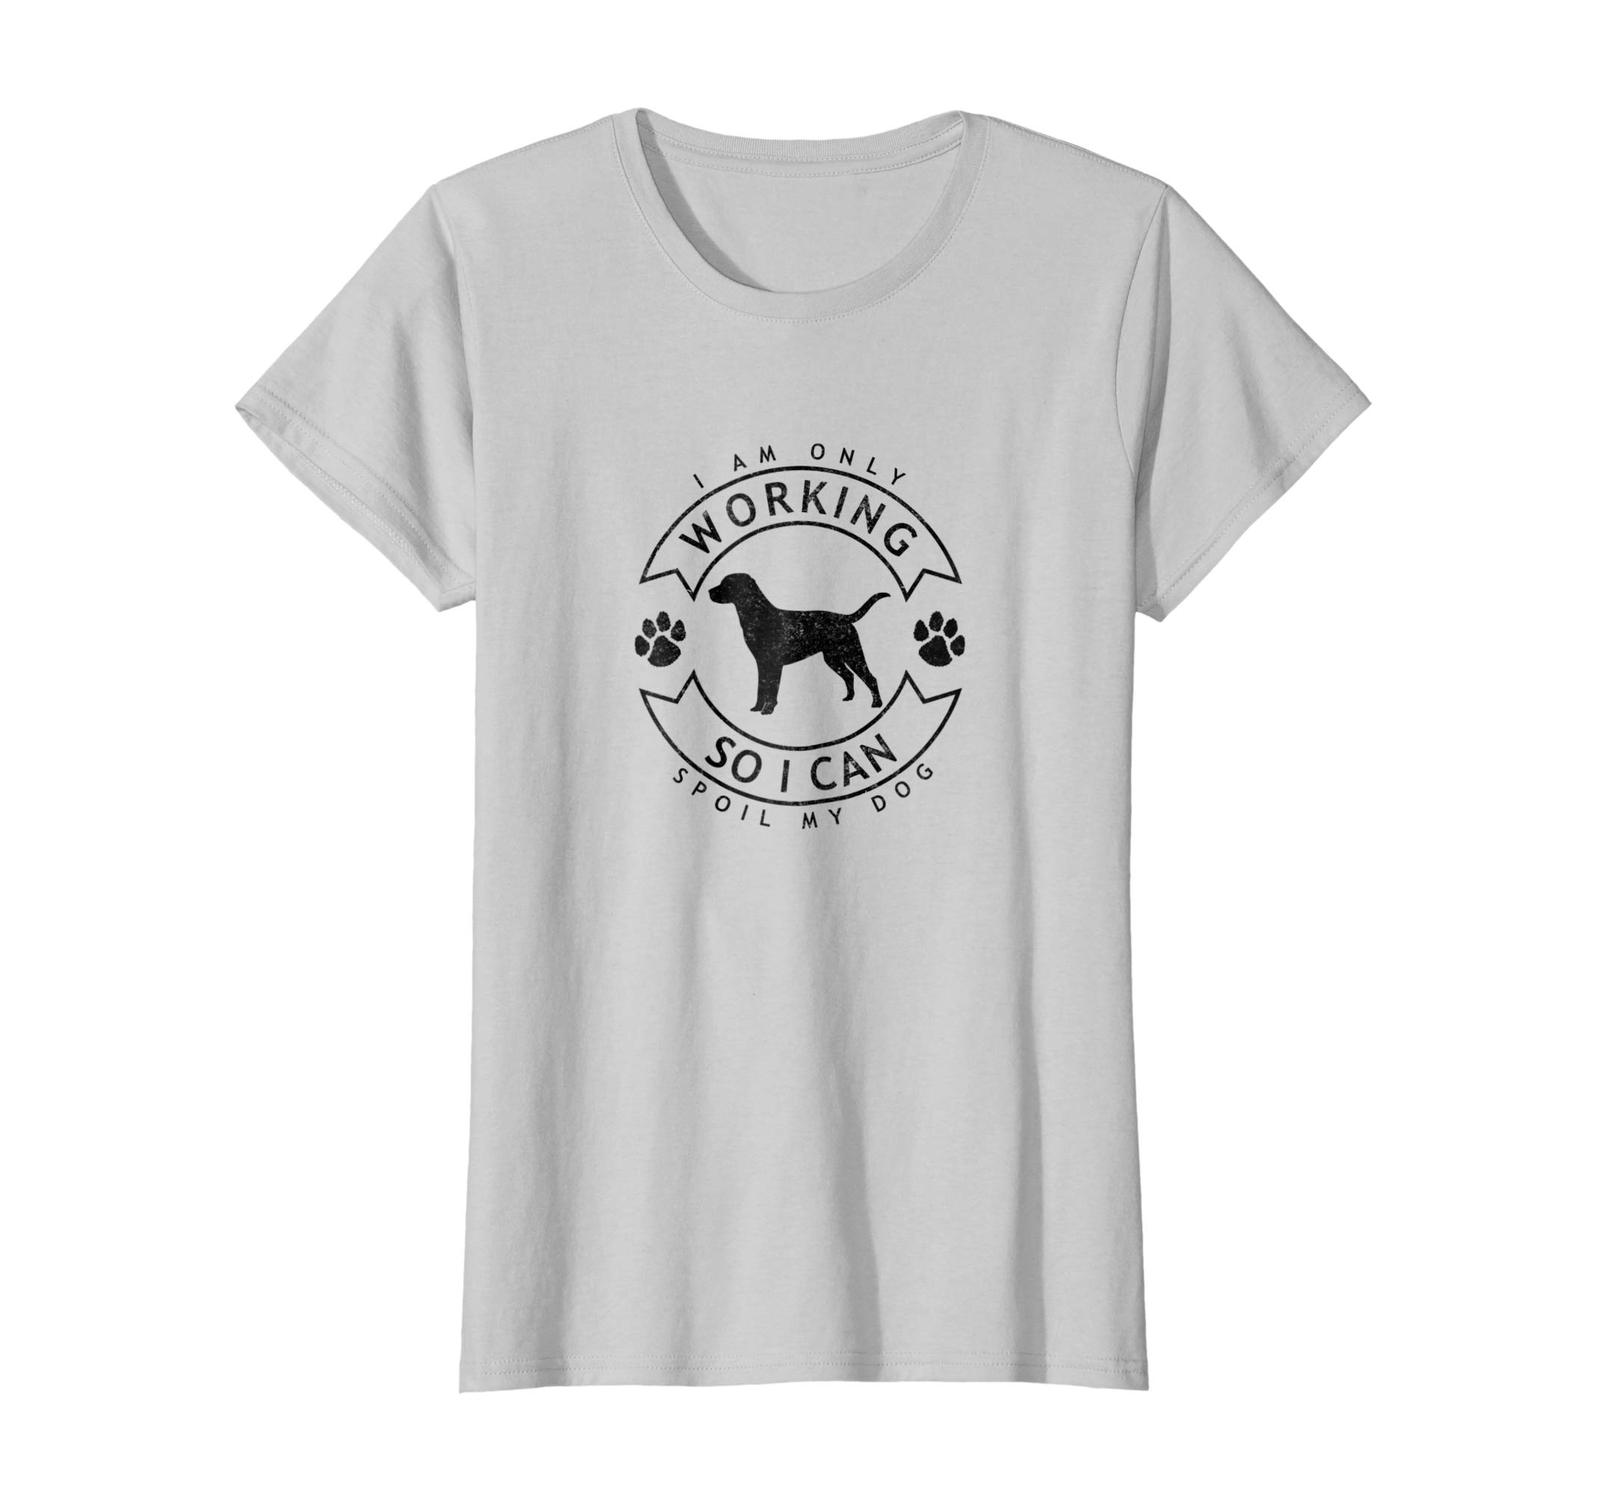 Dad Shirts -  I am only working so I can spoil my dog shirt Wowen